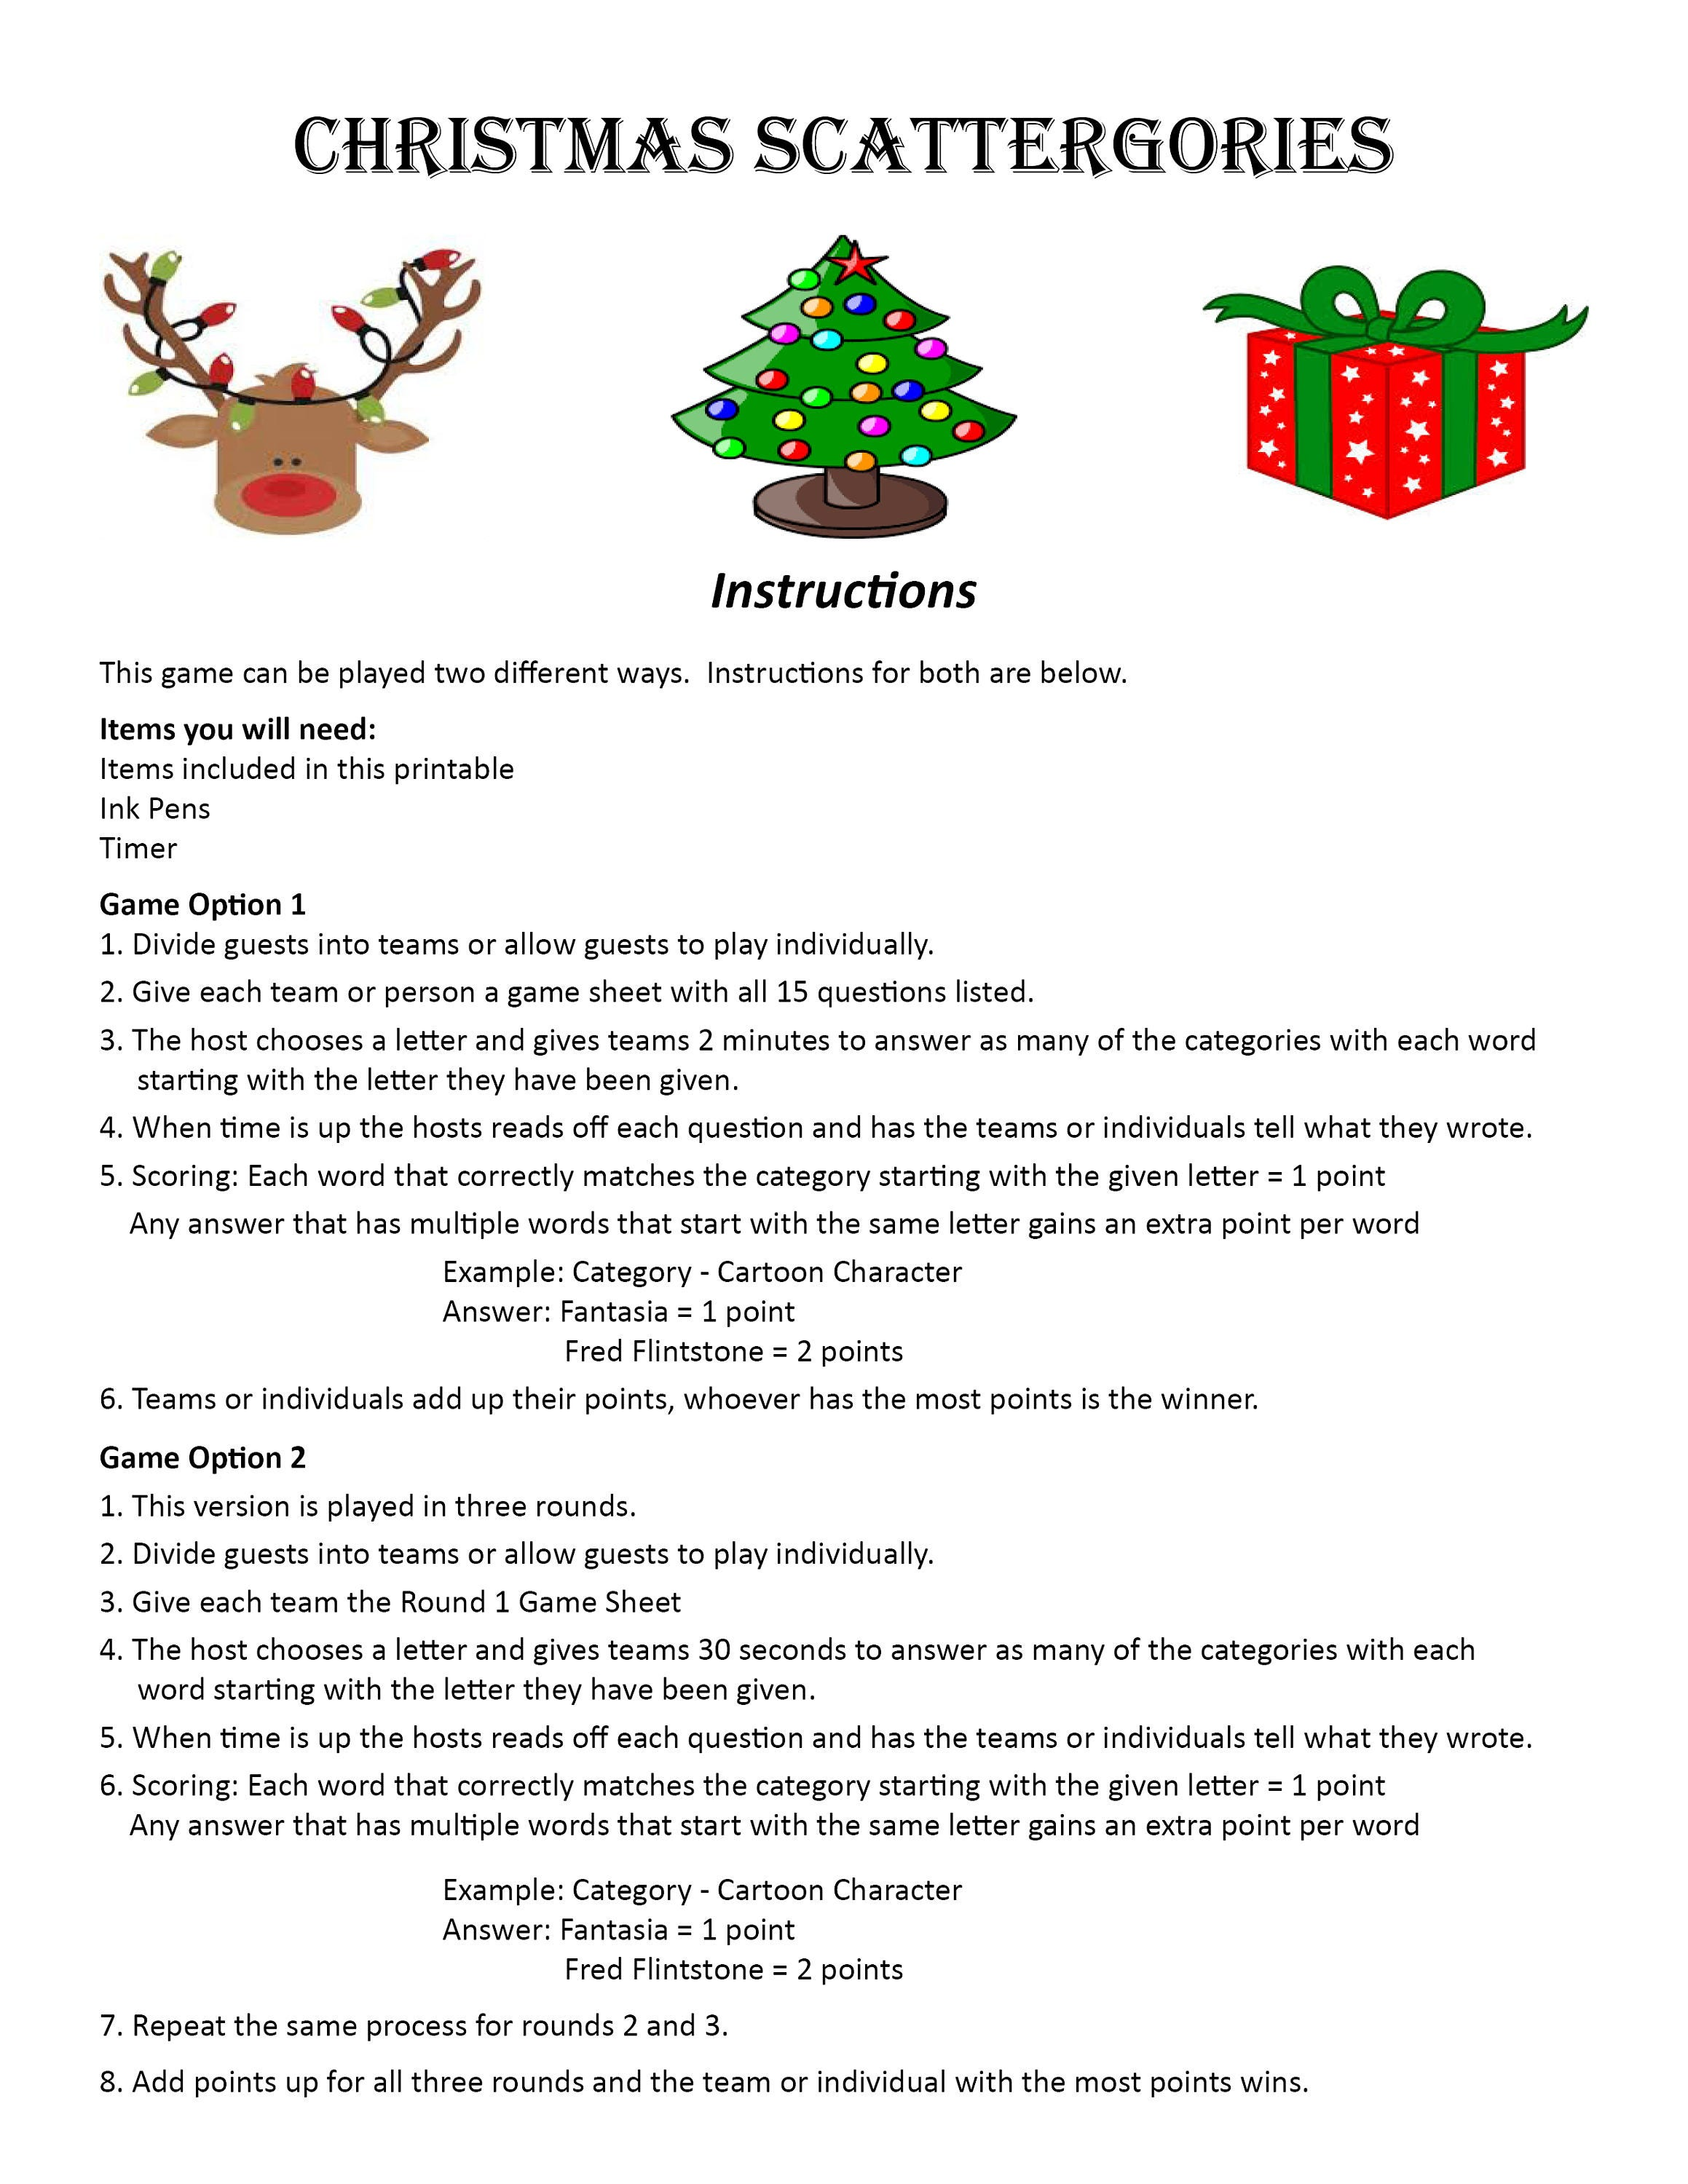 Christmas Scattergories DIGITAL DOWNLOAD Word Game Christmas | Etsy